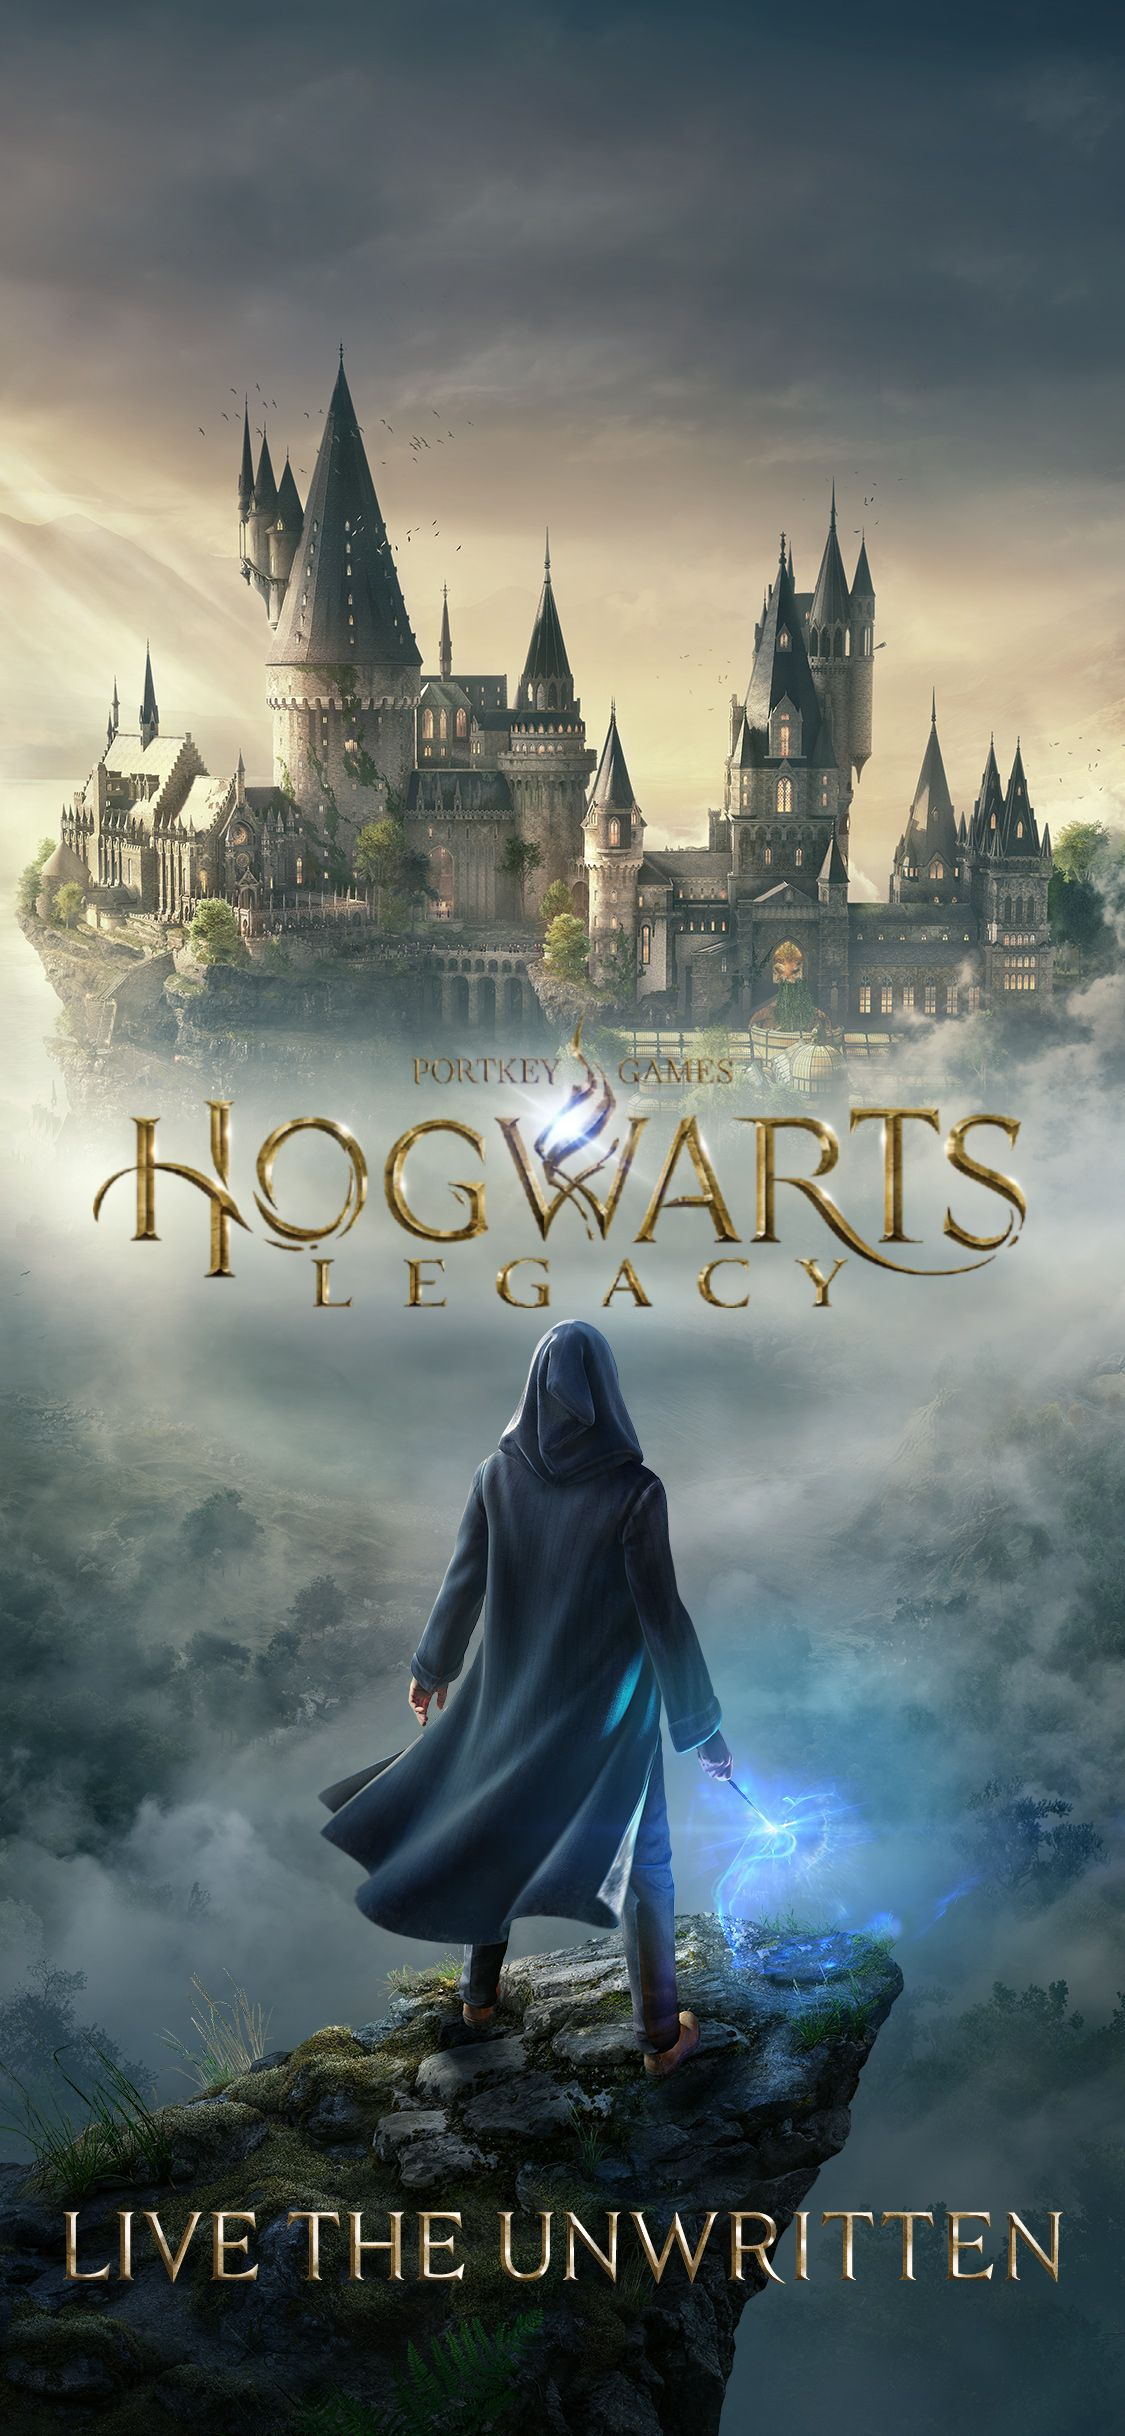 Hogwarts Legacy New Harry Potter And Wizarding World Open World Role Playing Game Announced Hogwarts Hogwarts Games Harry Potter Book Set